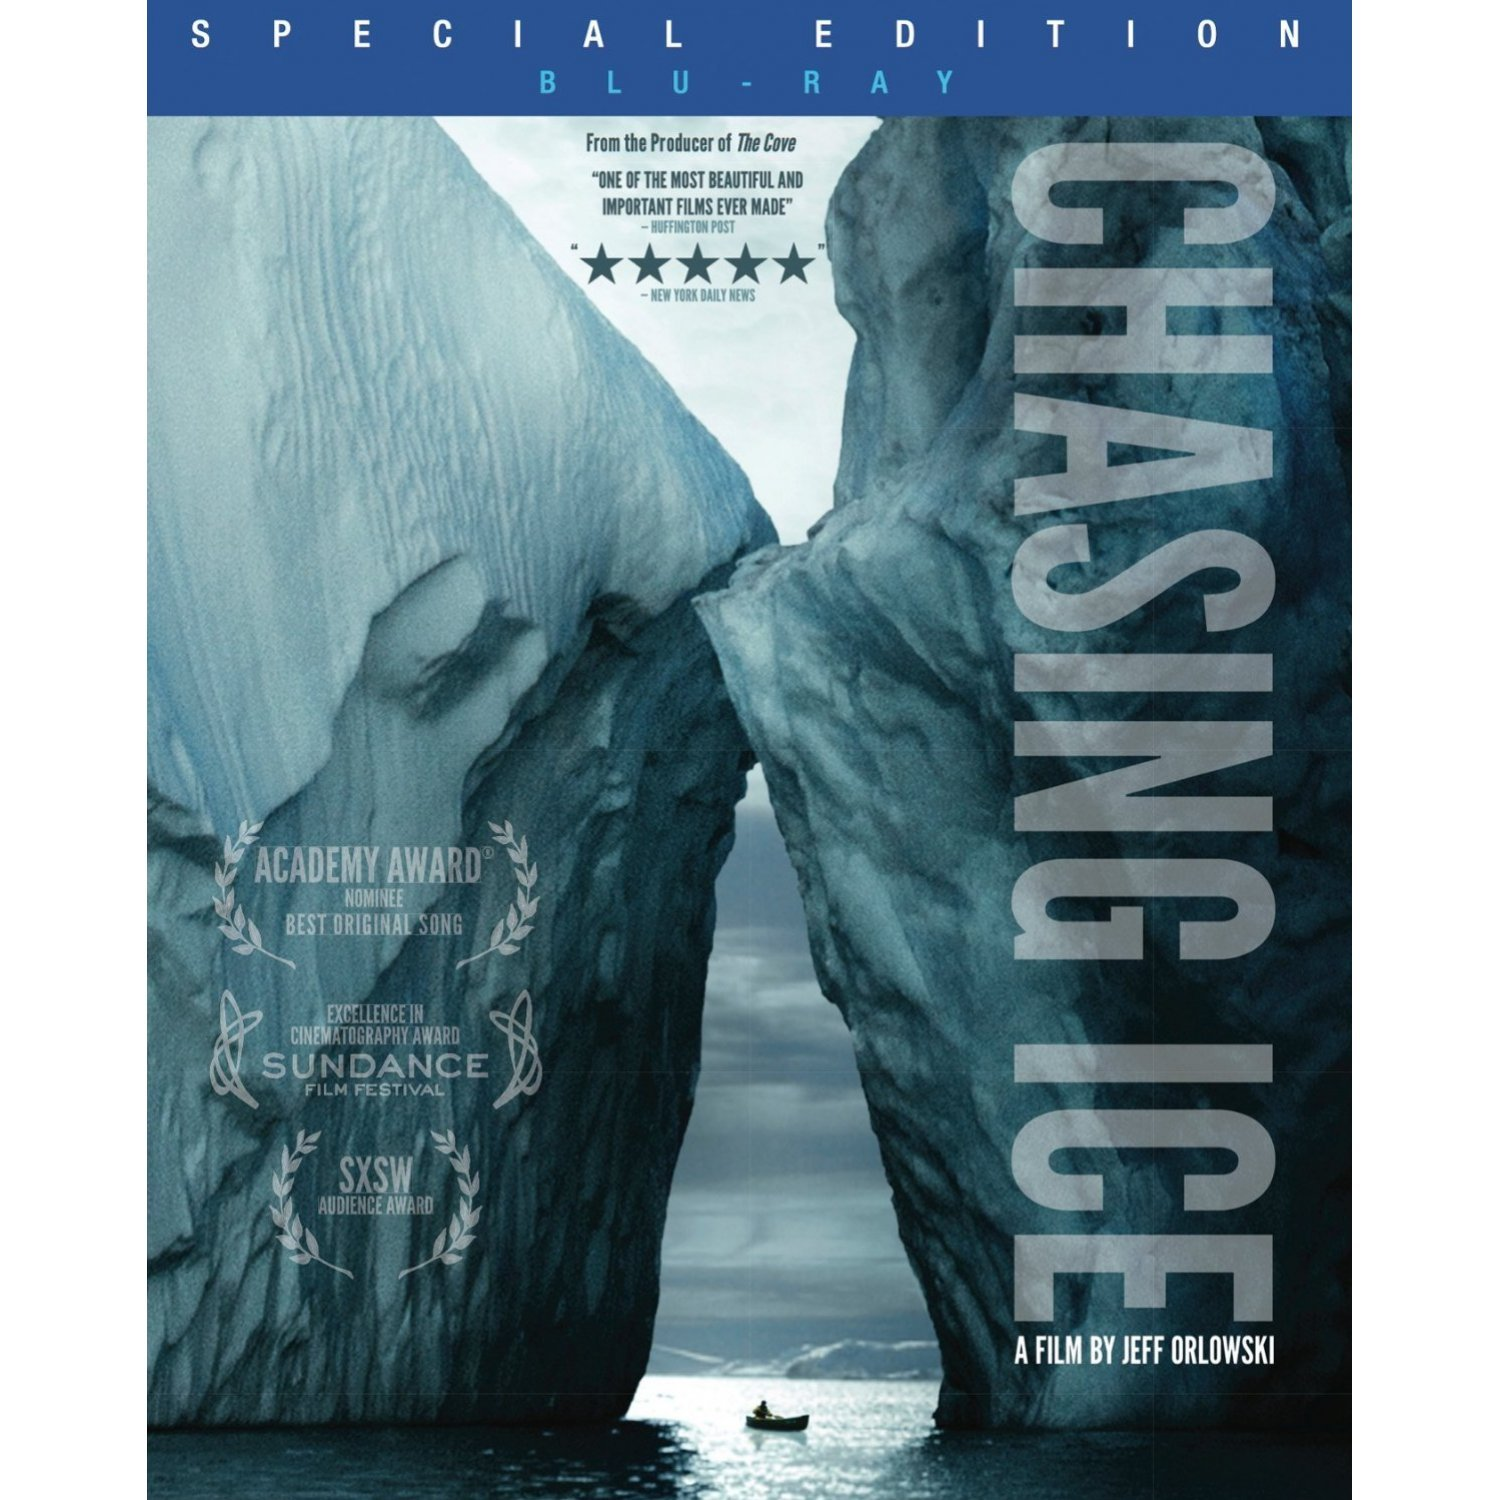 chasing ice film review essay An analysis of the 2012 film, chasing ice pages 3 words 661 sign up to view the rest of the essay read the full essay kibin reviews & testimonials.